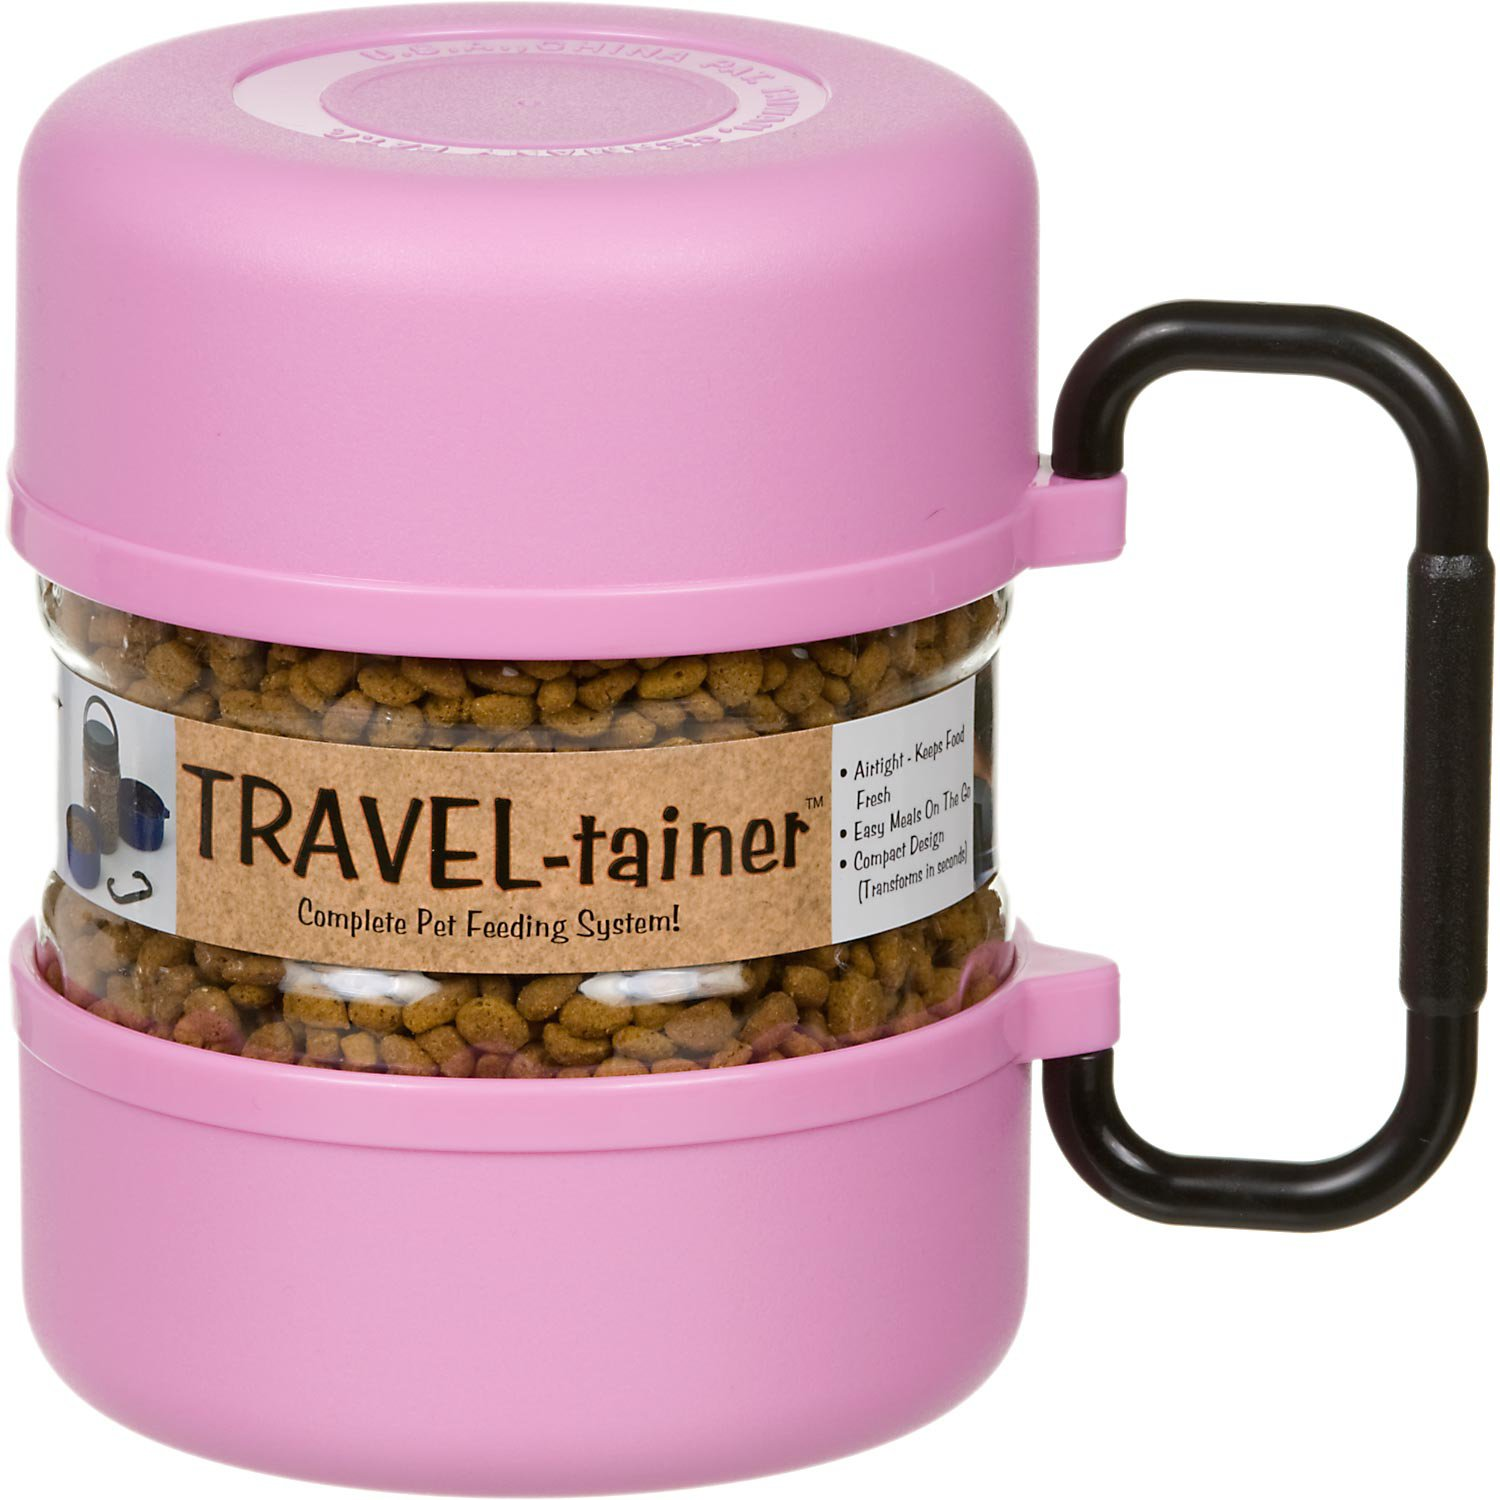 Gamma TRAVEL-tainer in Pink